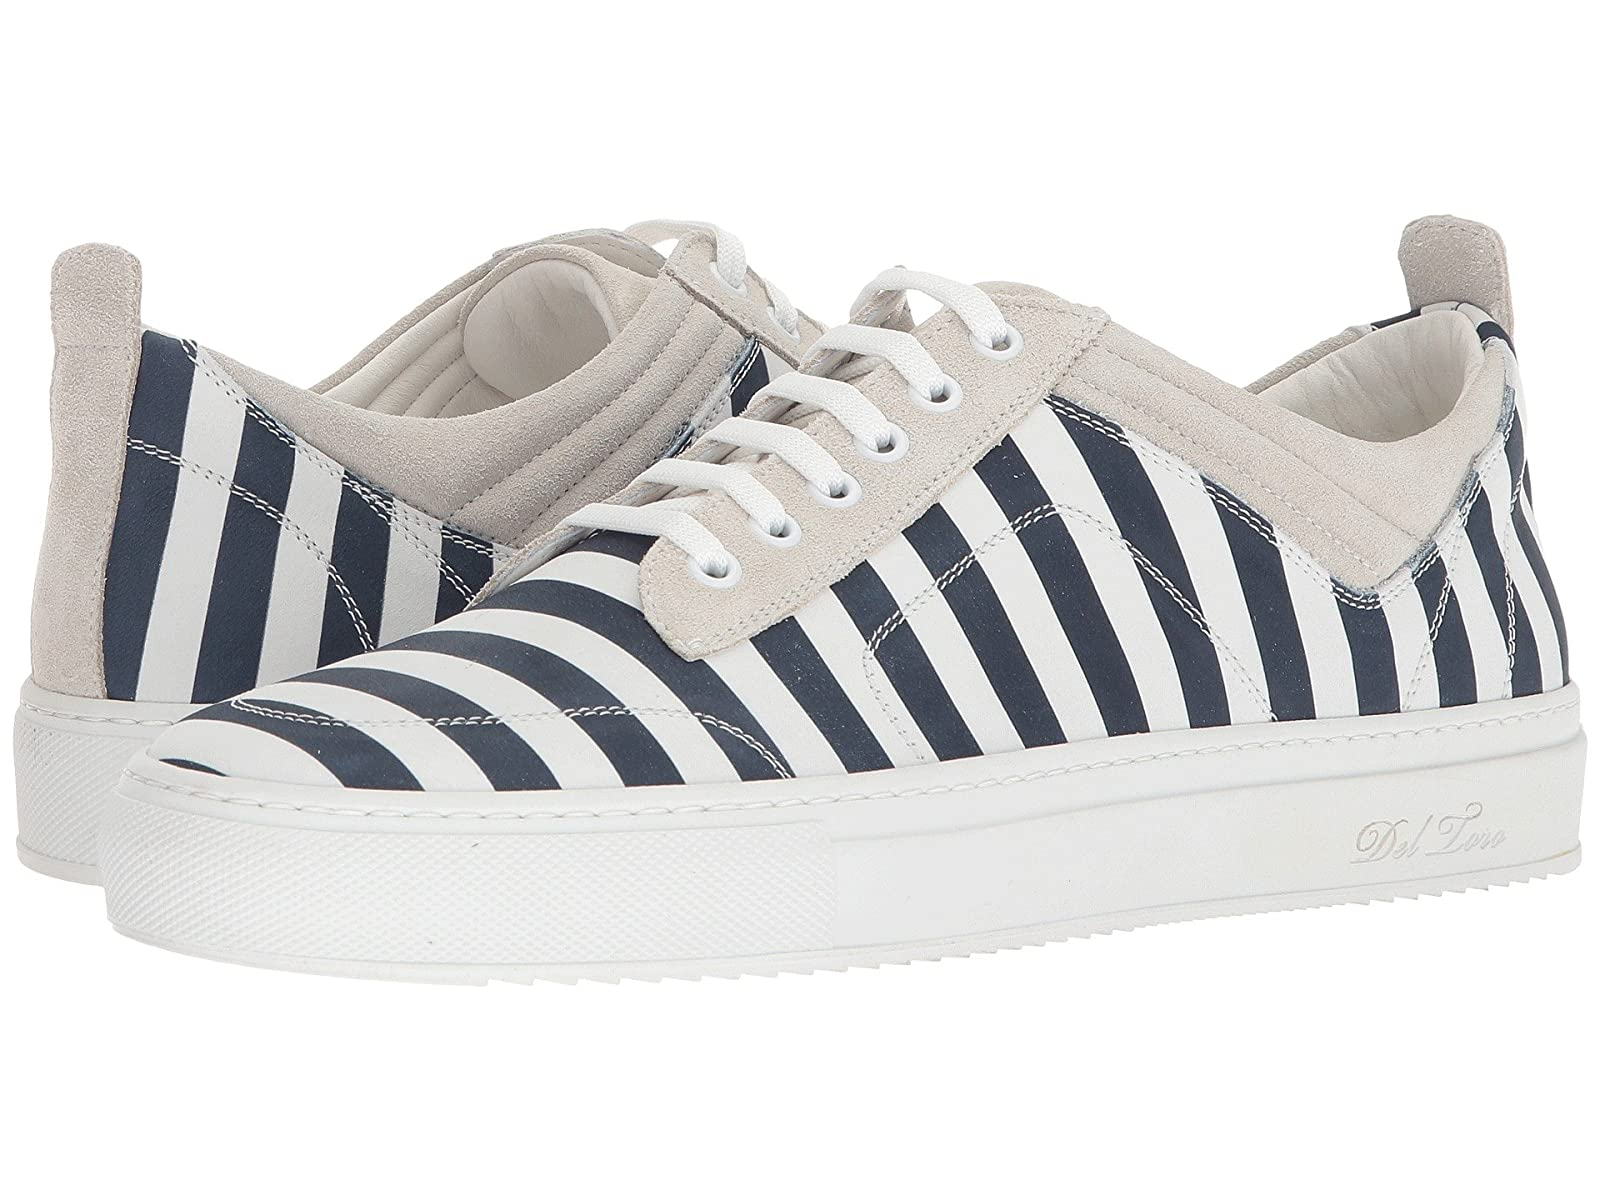 Del Toro Low Top Boxing SneakerAtmospheric grades have affordable shoes